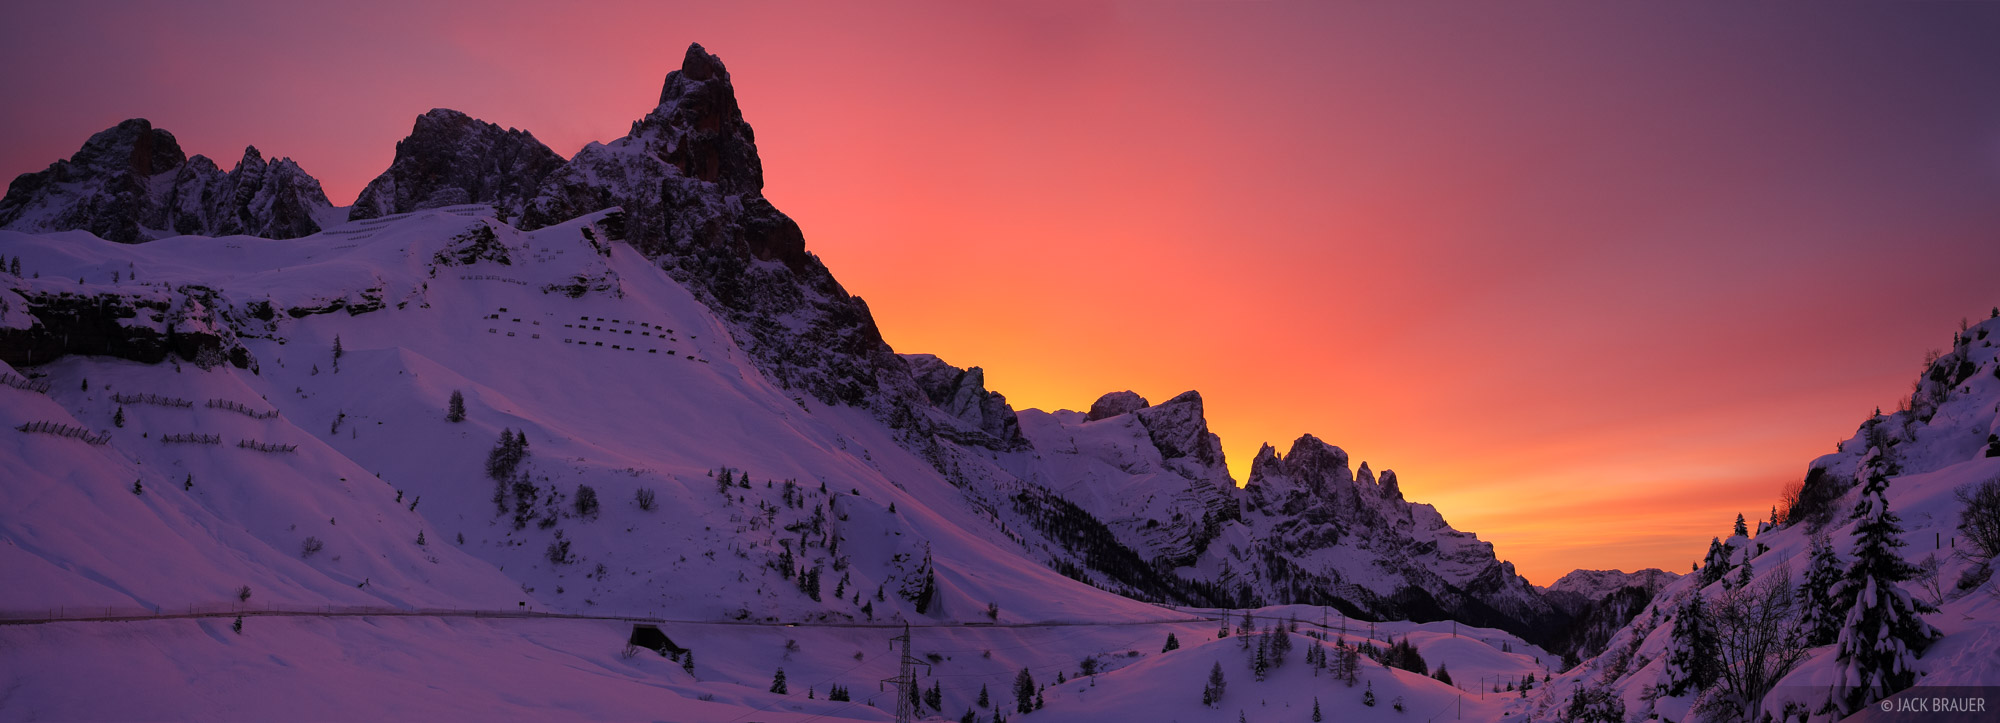 Sunrise over the Pale di San Martino, as seen from Passo Rolle - December.